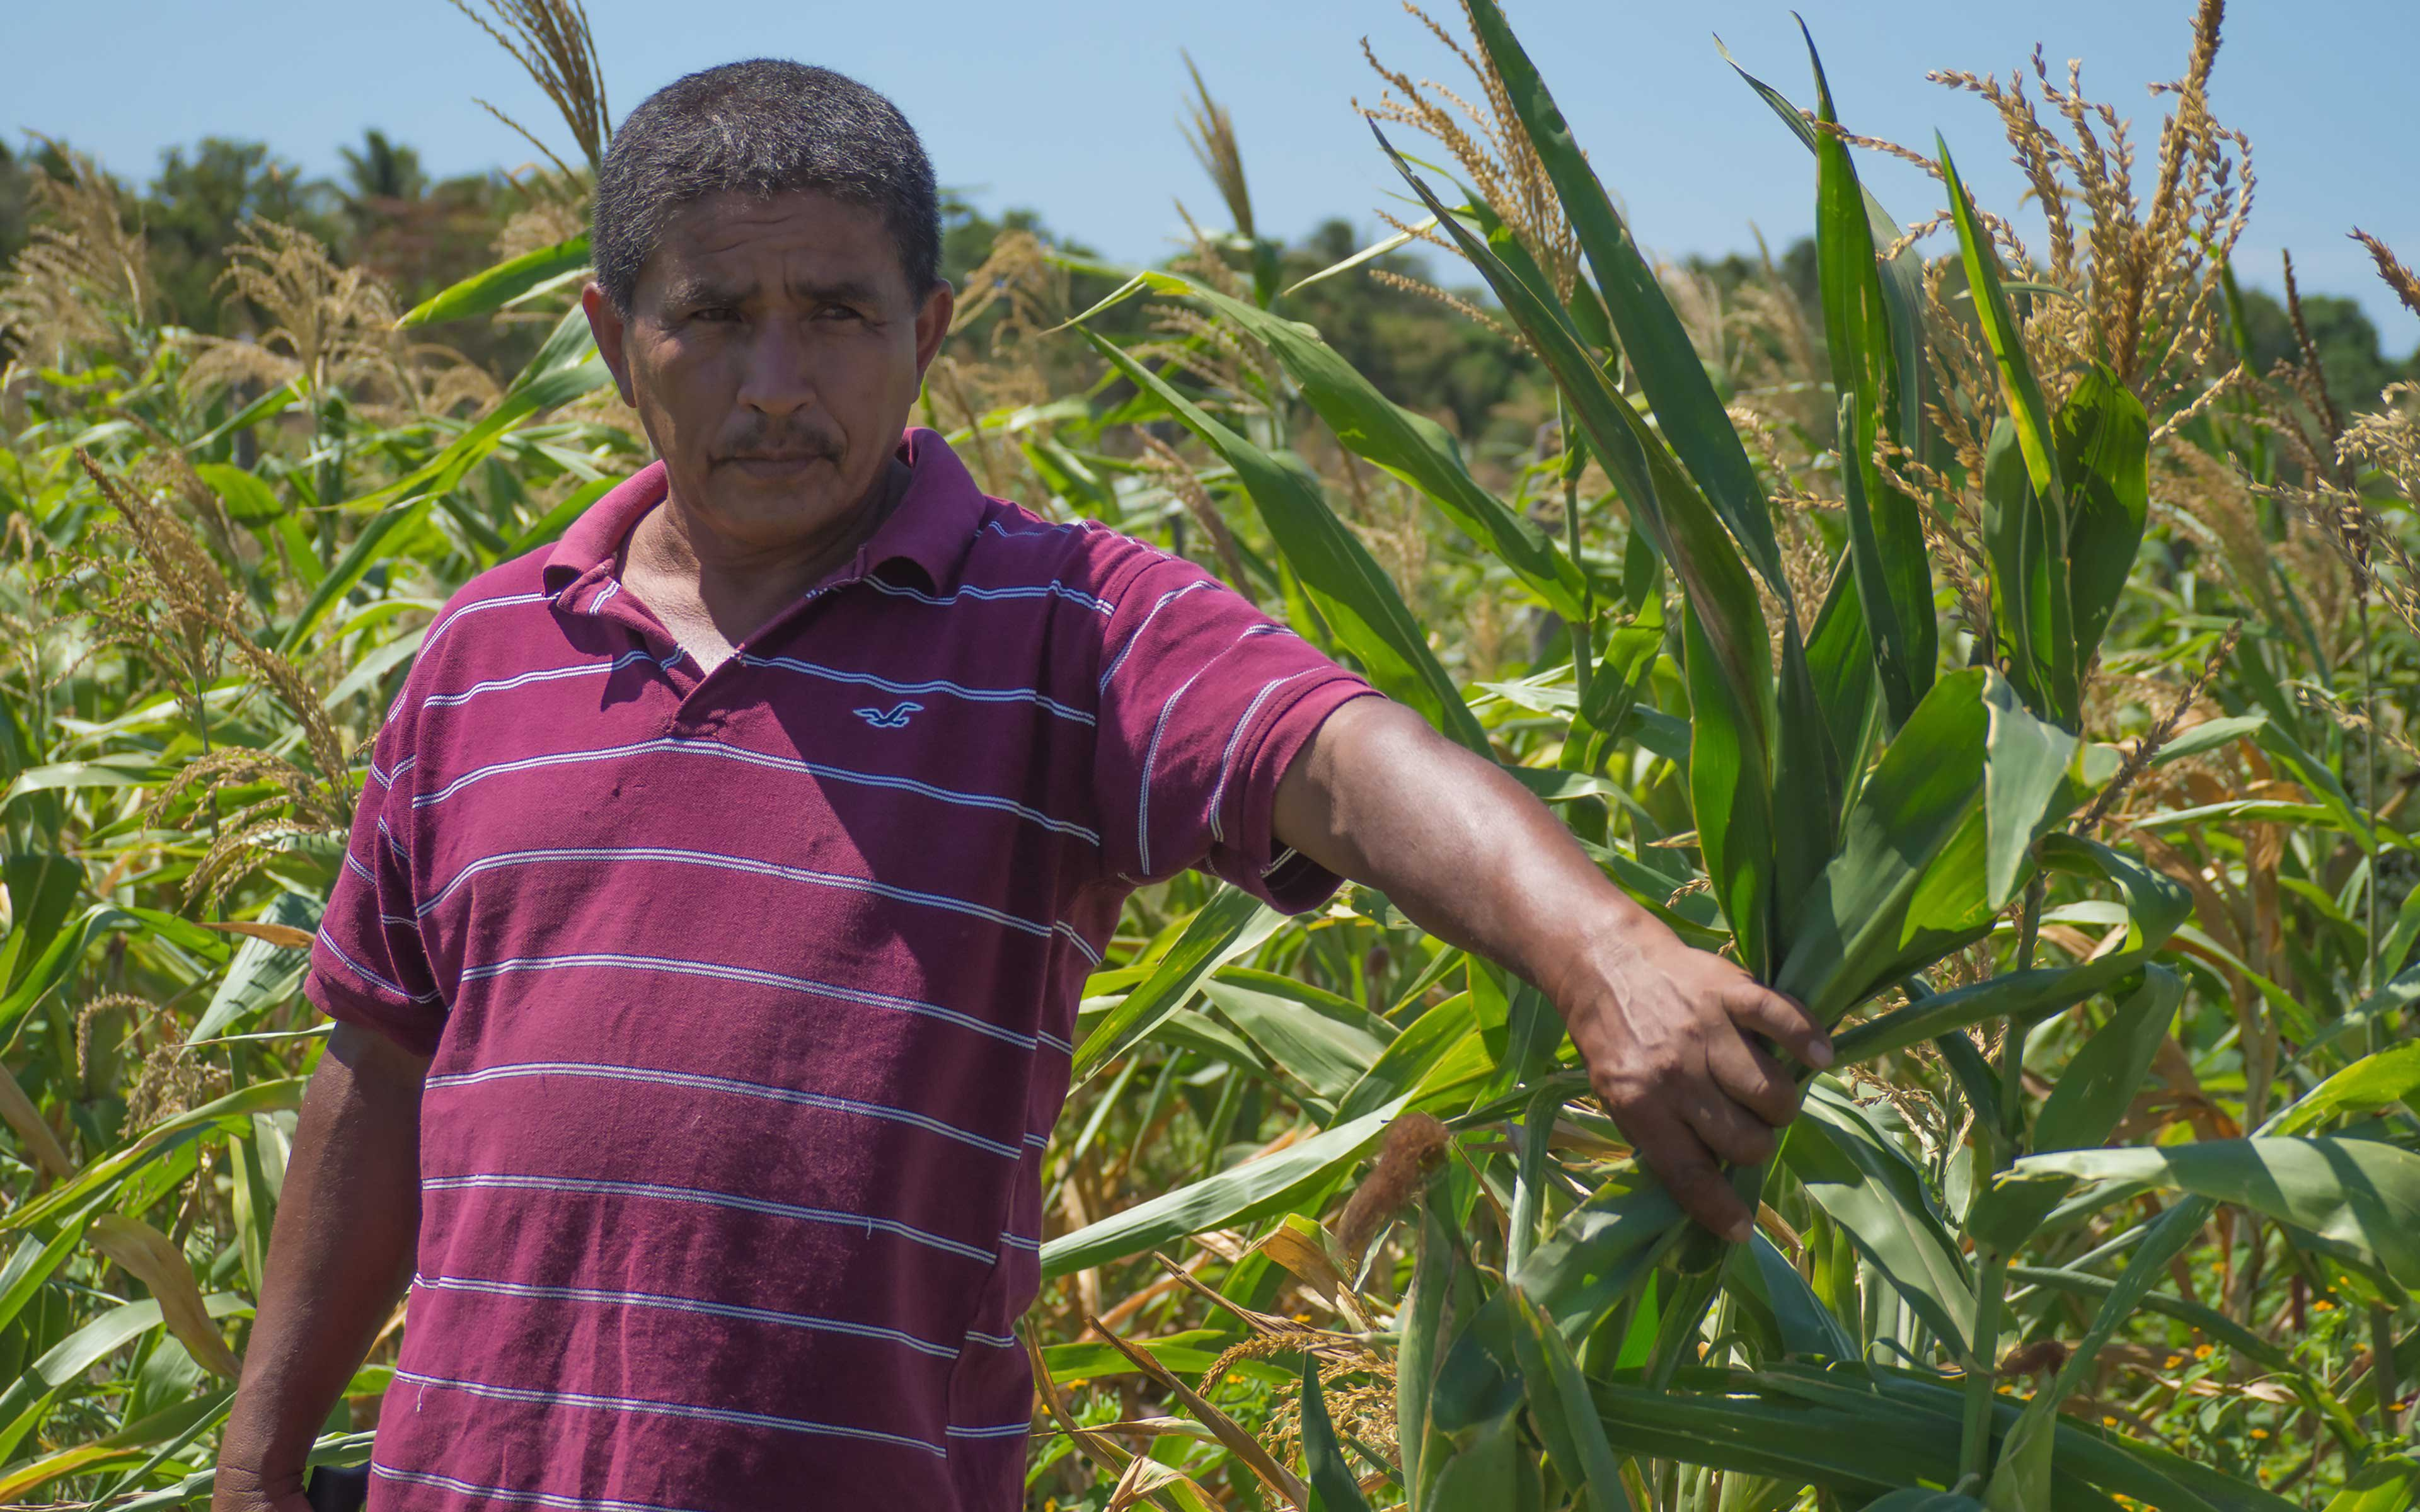 """""""When we used to spray chemical fertilizer on our crops, it would affect our brains and our bodies. I would feel dizzy and get a headache…the chemical would spill onto my back, and I broke out in rashes,"""" says farmer Felipe Cordova. """"With organic fertilizer, it's different."""""""